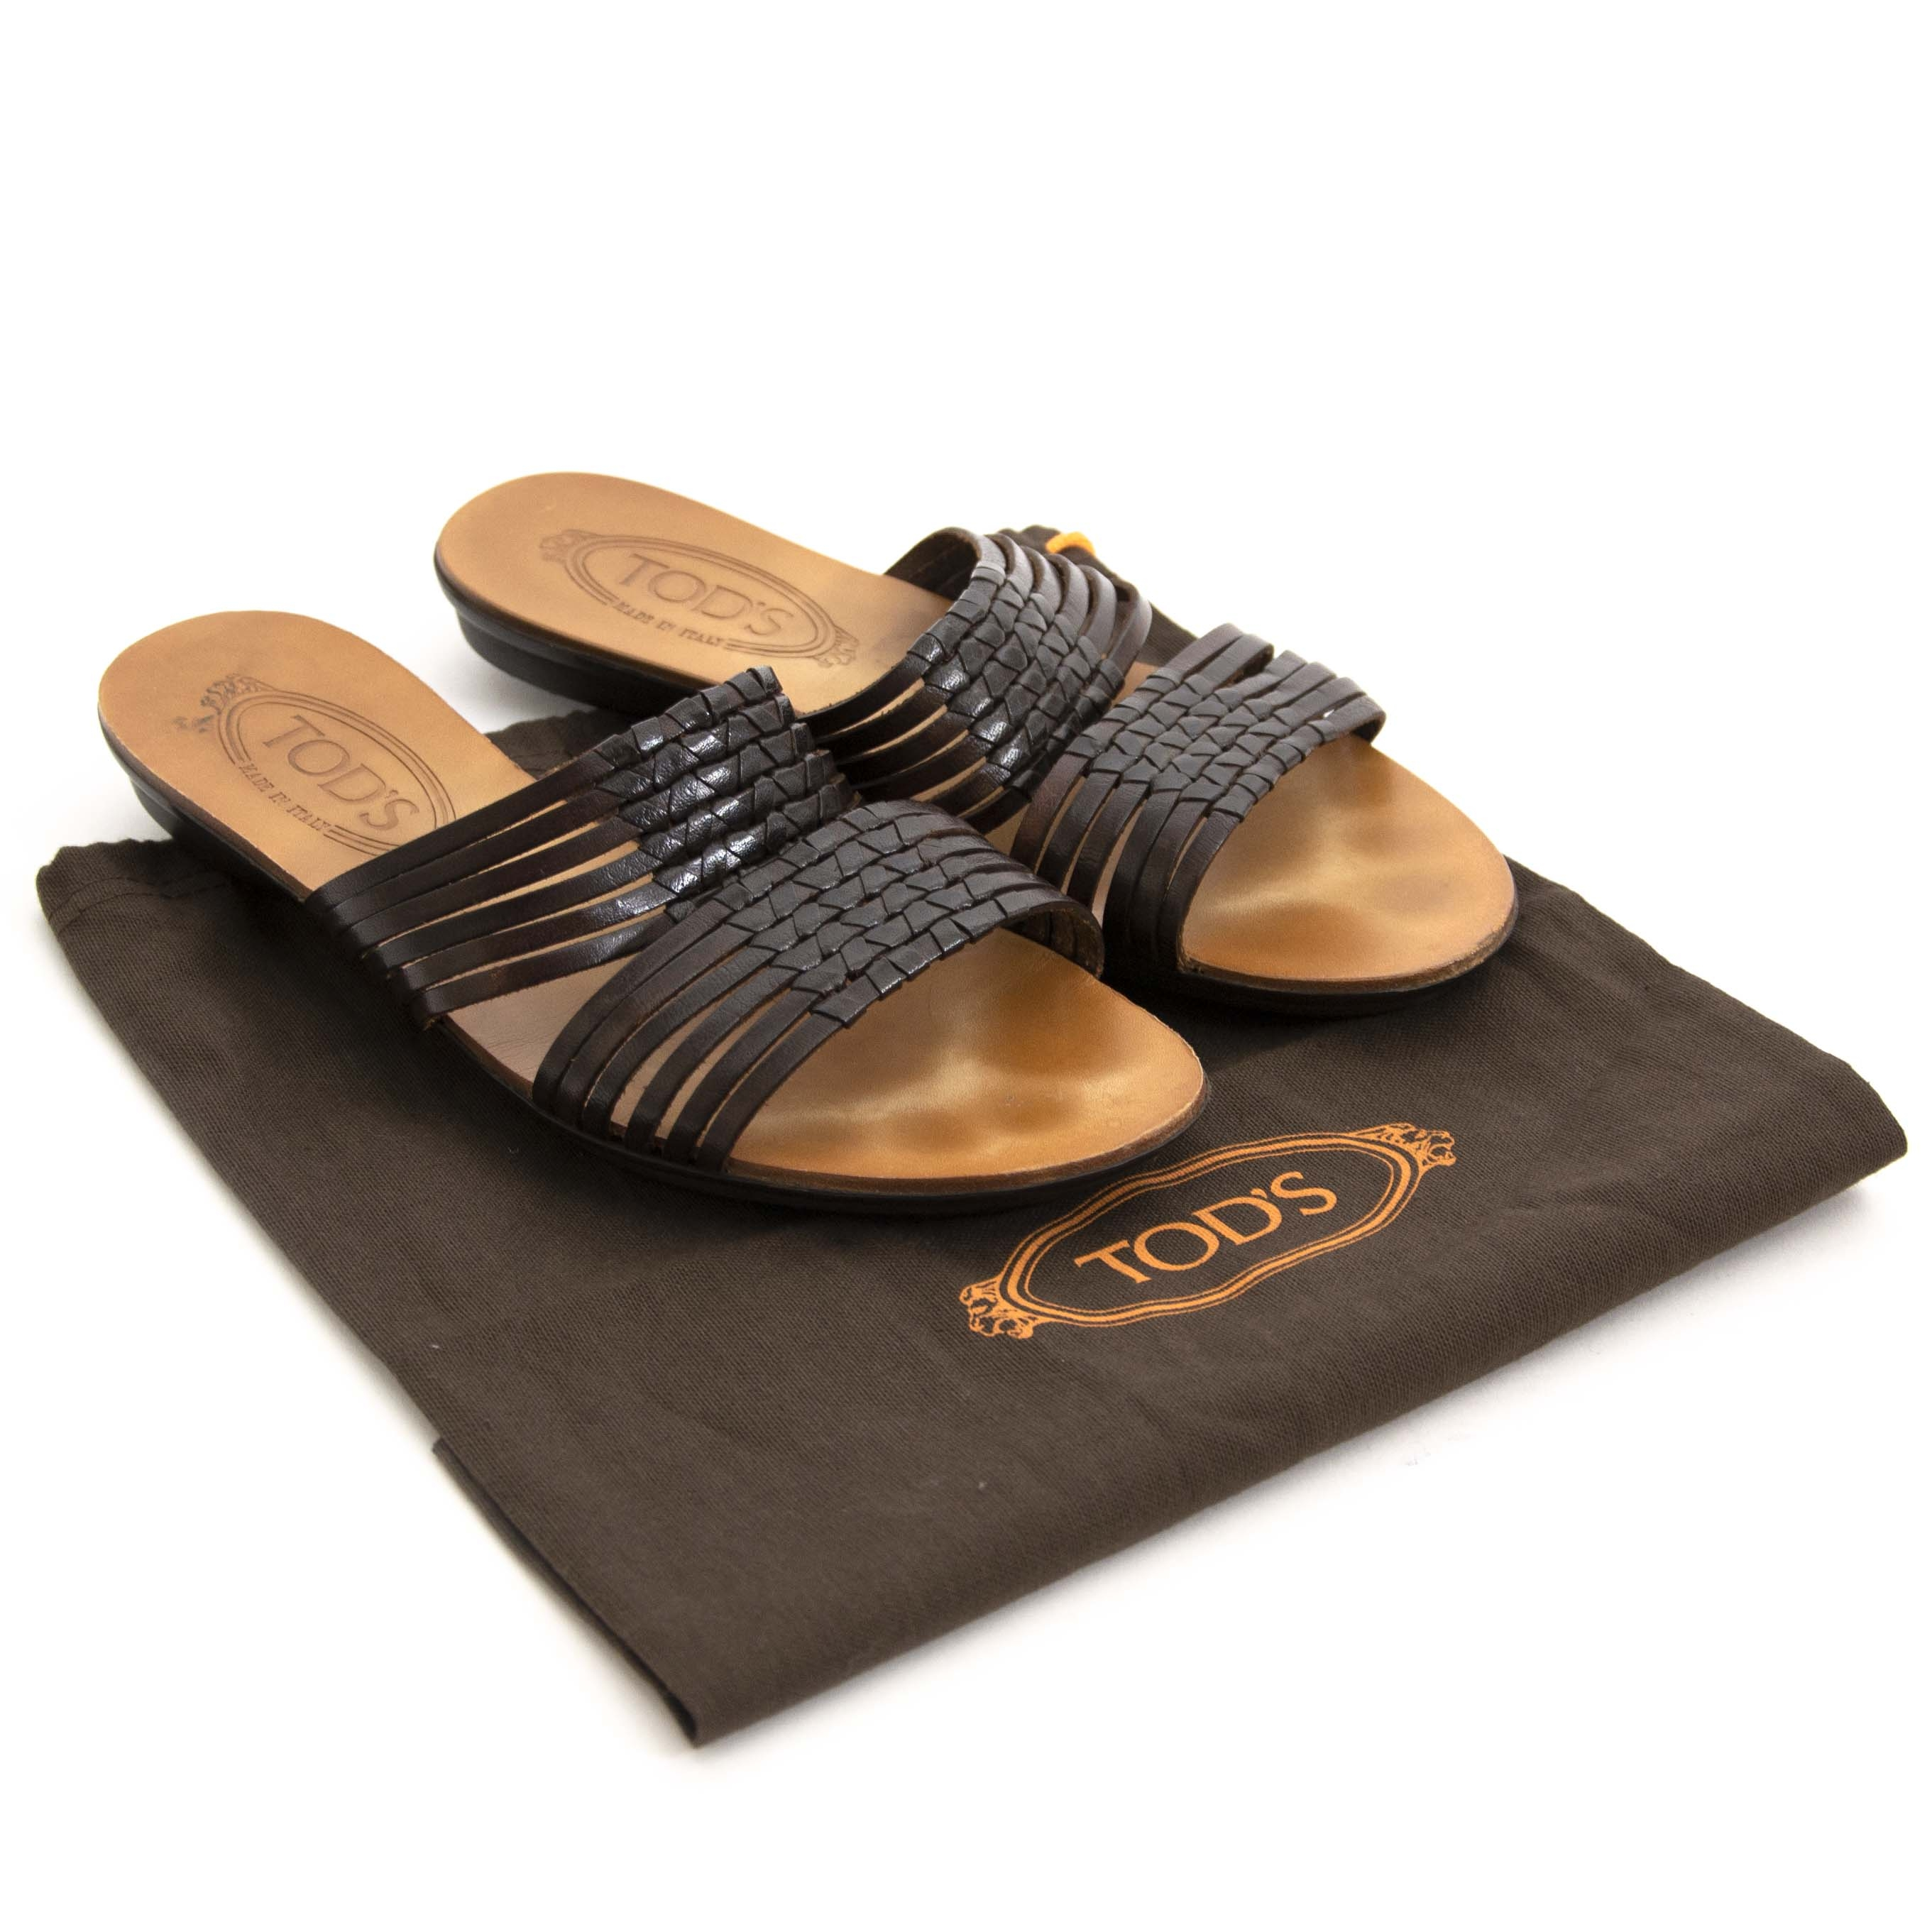 Tod's Dark Brown Sandals - Size 38,5. Buy authentic secondhand Tod's shoes at the right price at LabelLOV, safe and secure online shopping. Koop authentieke tweedehands Tods schoenen aan de juiste prijs bij LabelLOV.